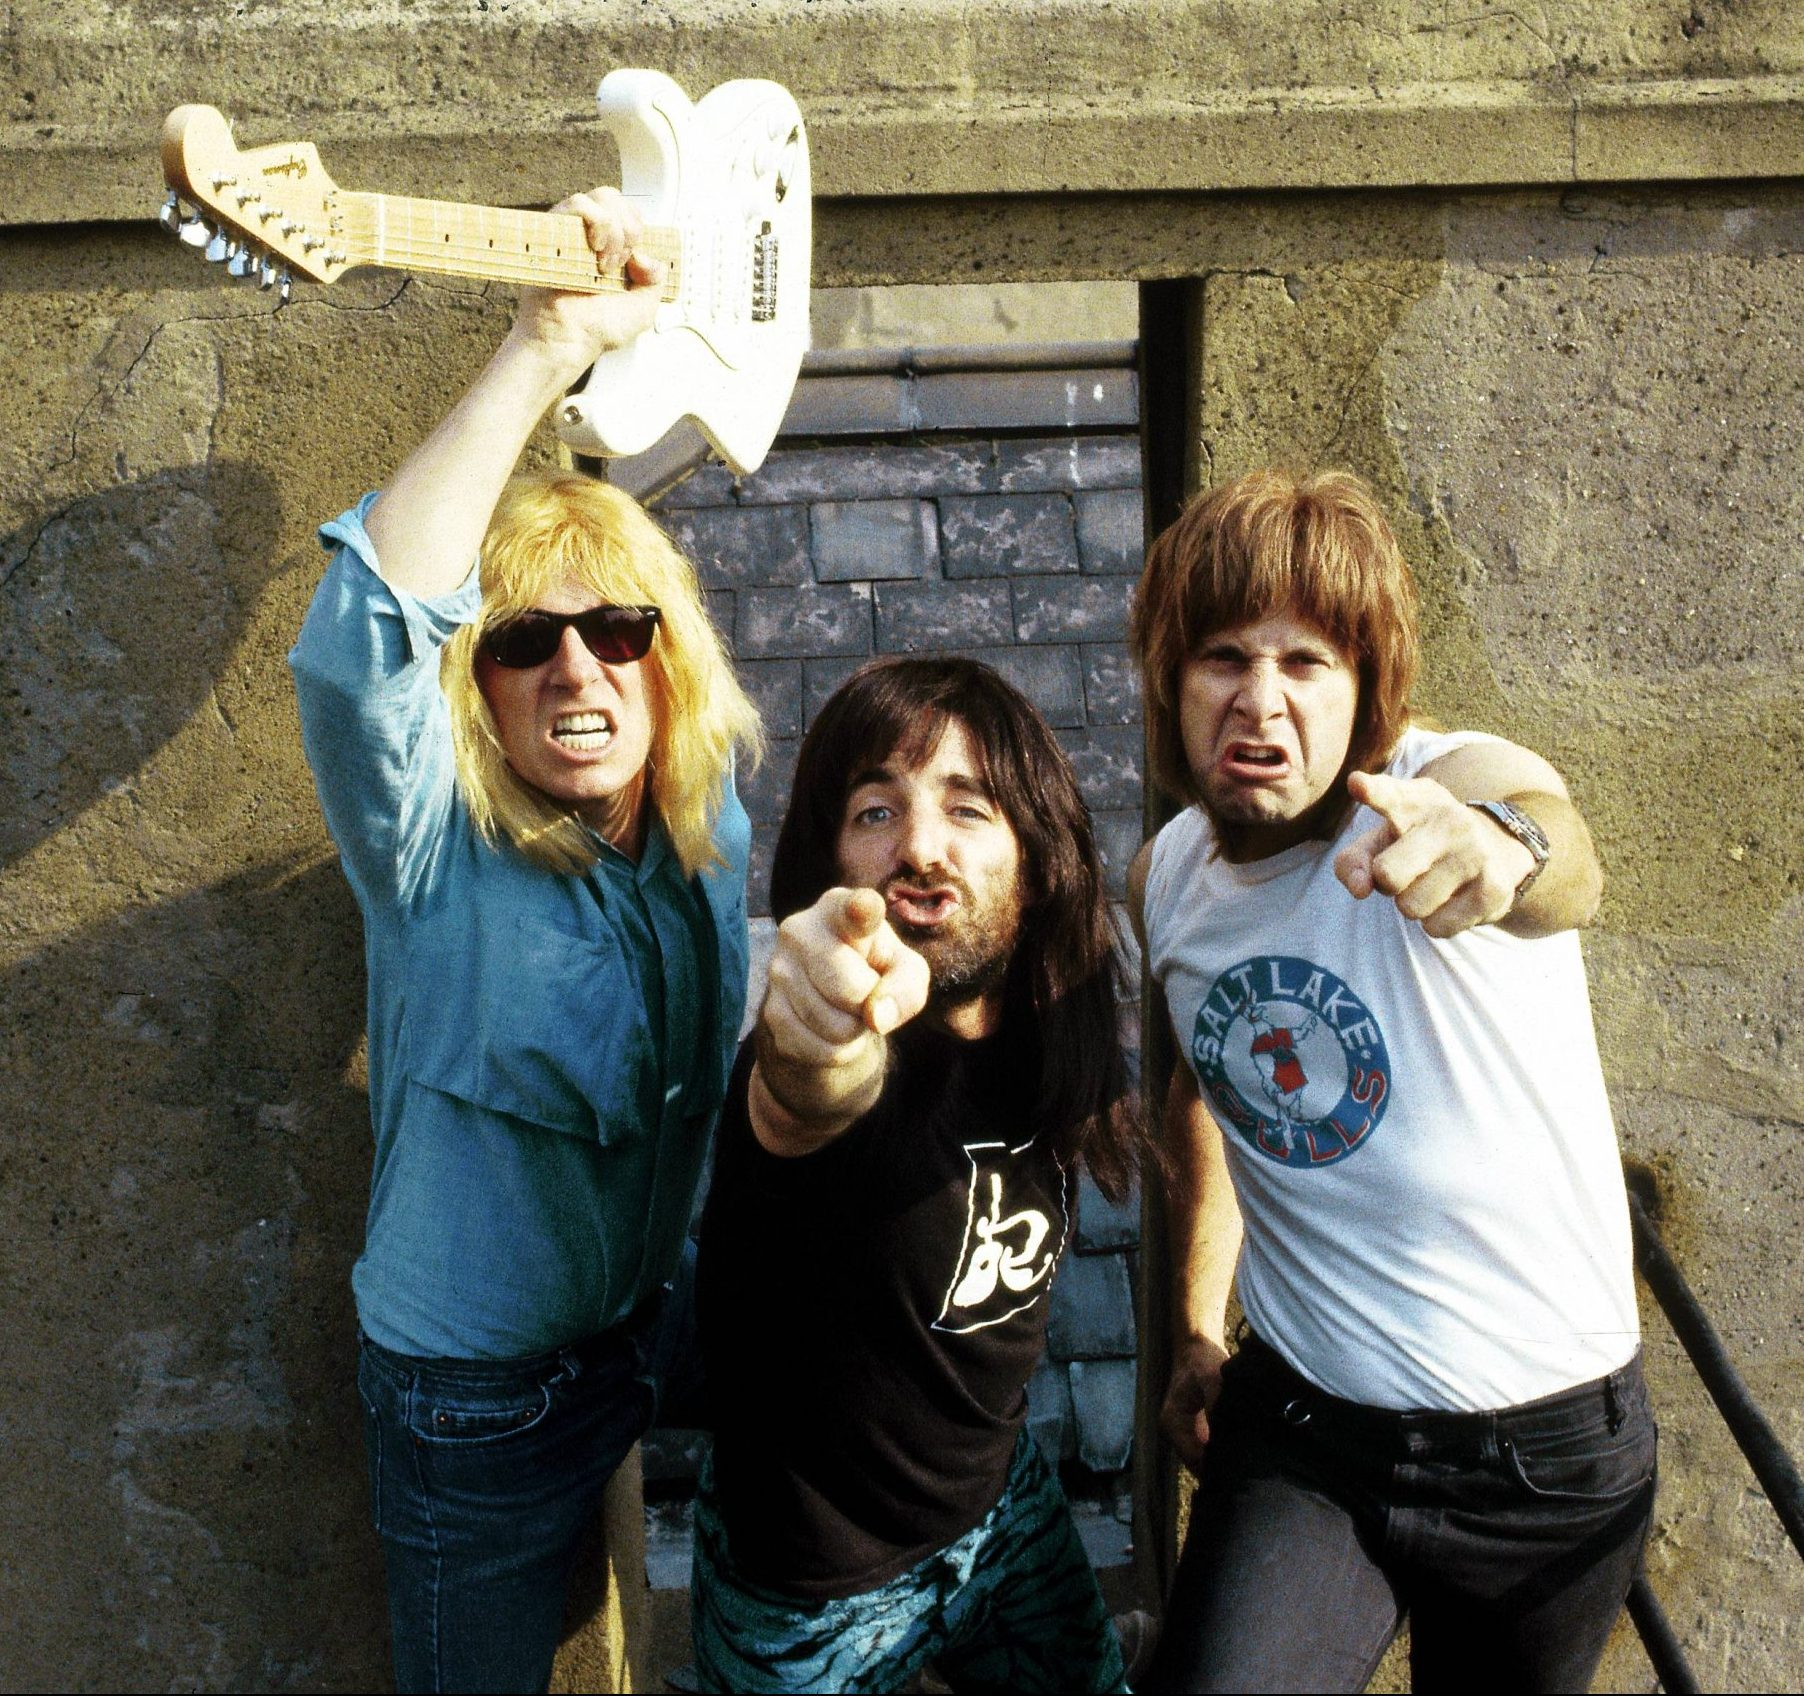 rs 197476 84900332 scaled e1604927892557 Tonight We're Gonna Rock You With 30 Facts About This Is Spinal Tap!